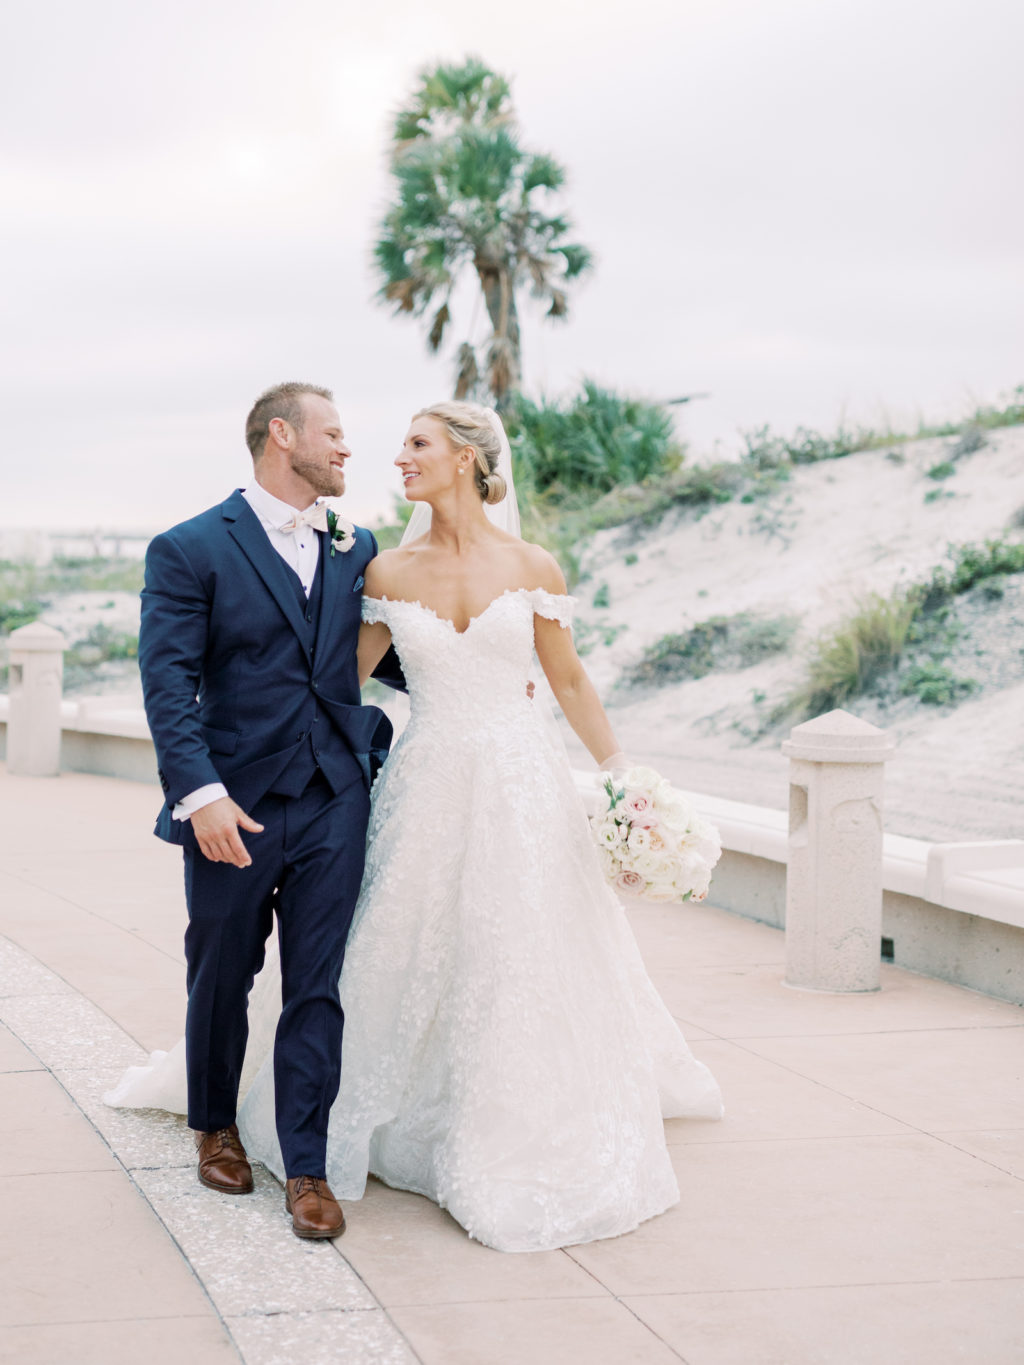 Timeless Florida Bride Wearing Floral Lace Over Tulle Off the Shoulder Allure Couture Ballgown Wedding Dress, Groom in Blue Tuxedo and Ivory Bowtie | Tampa Bay Wedding Hair and Makeup Artist Femme Akoi Beauty Studio